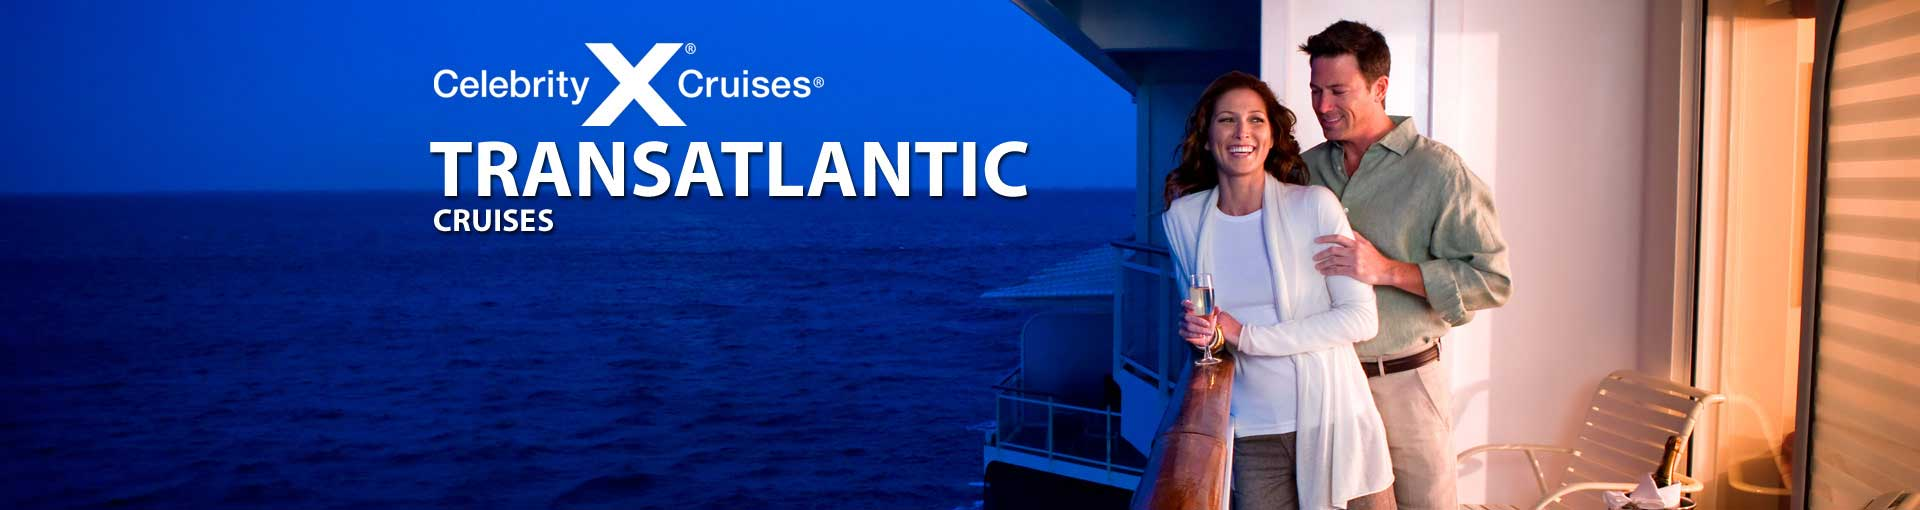 Repositioning Cruise Deals: Celebrity